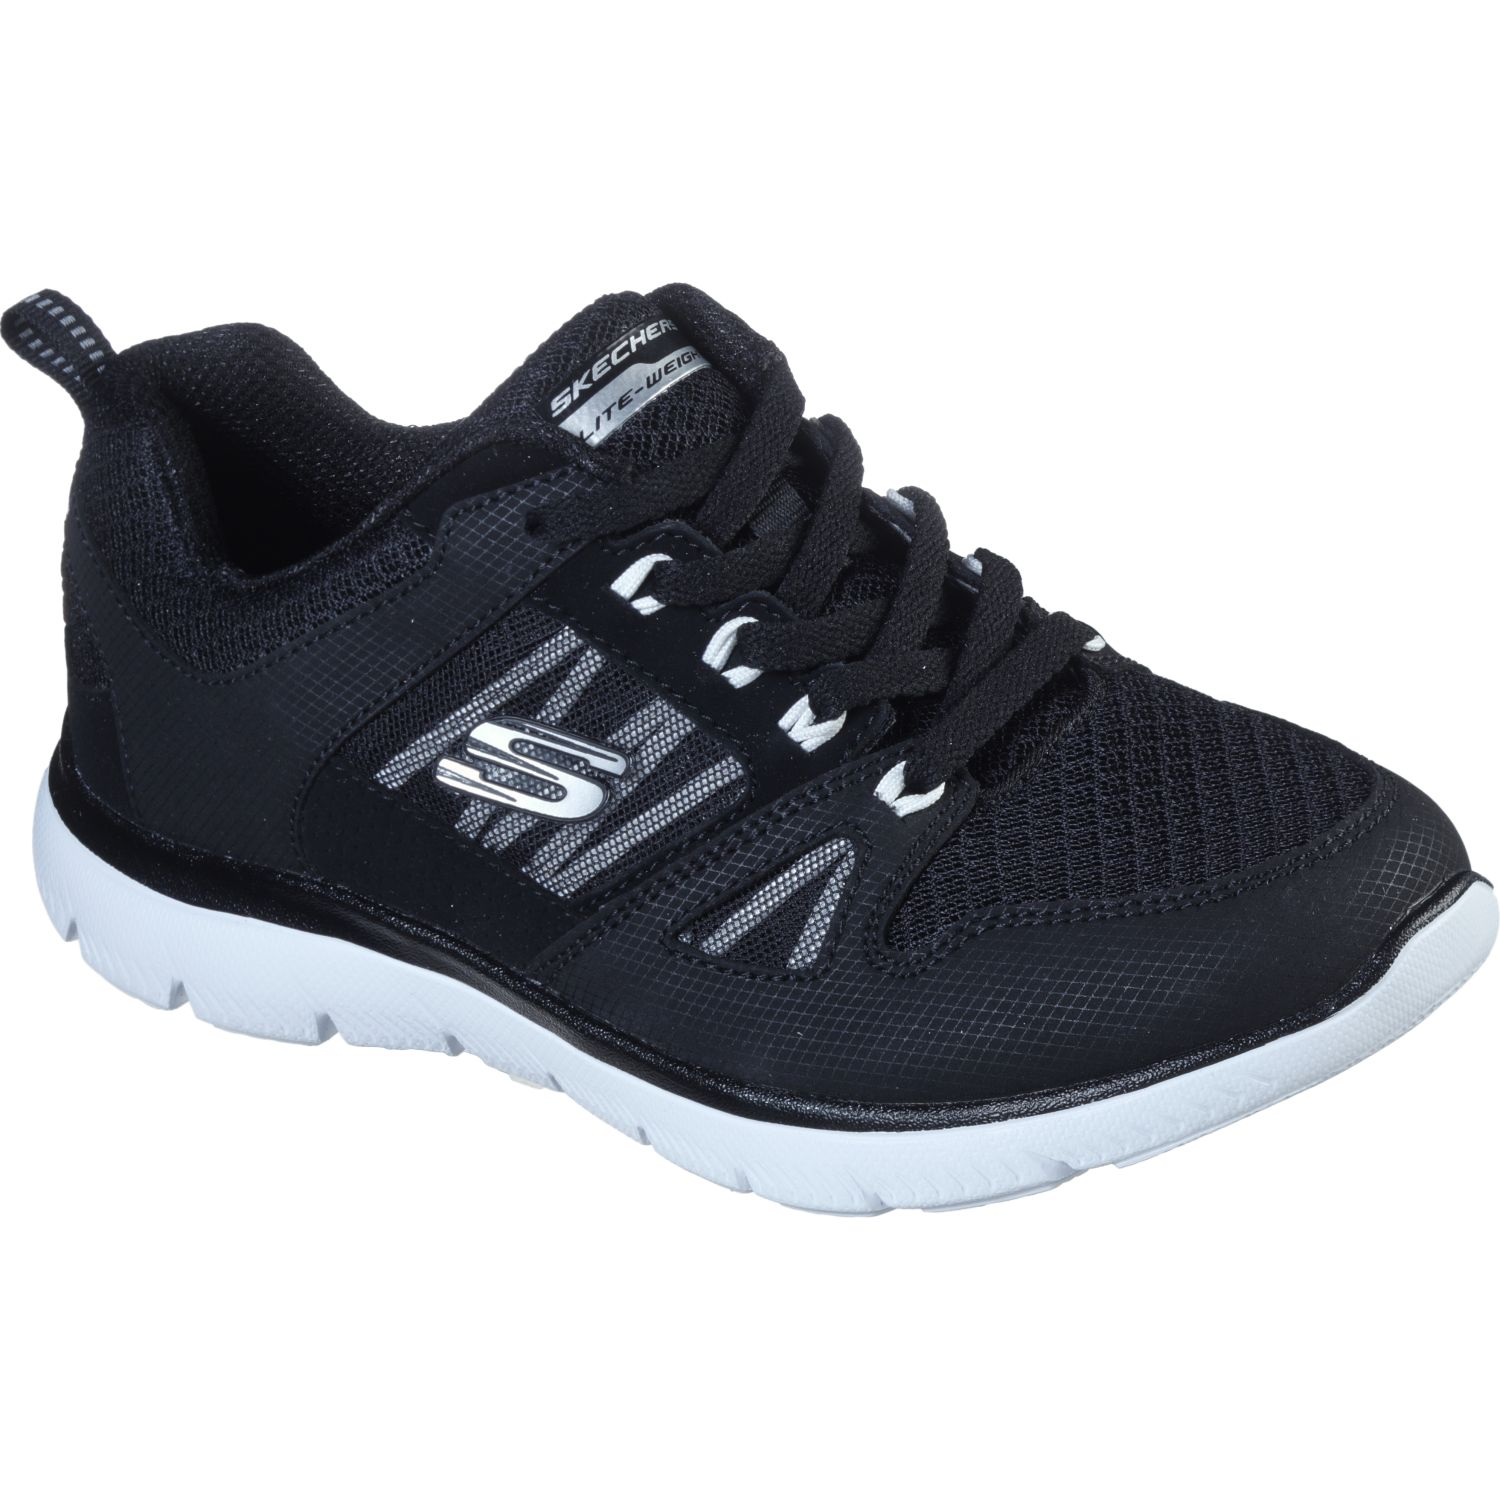 Skechers summit Negro Running en pista